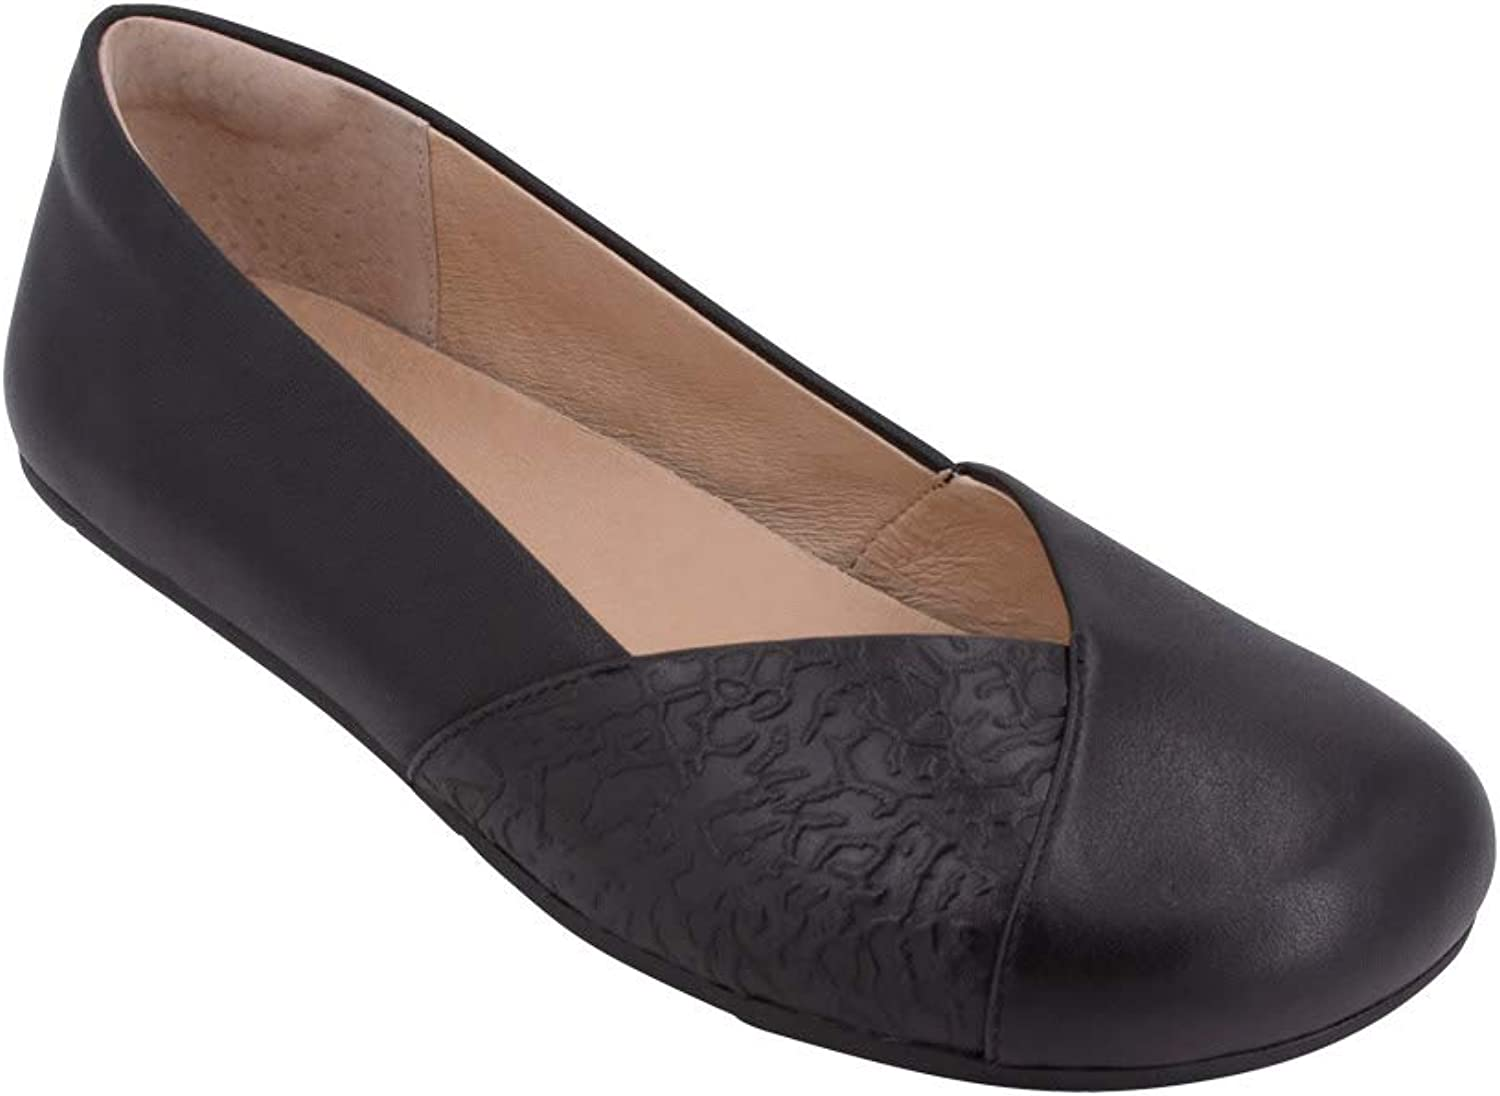 Xero Product Shoes Women's Phoenix Casual Dr Lightweight Flats Ballet Beauty products -